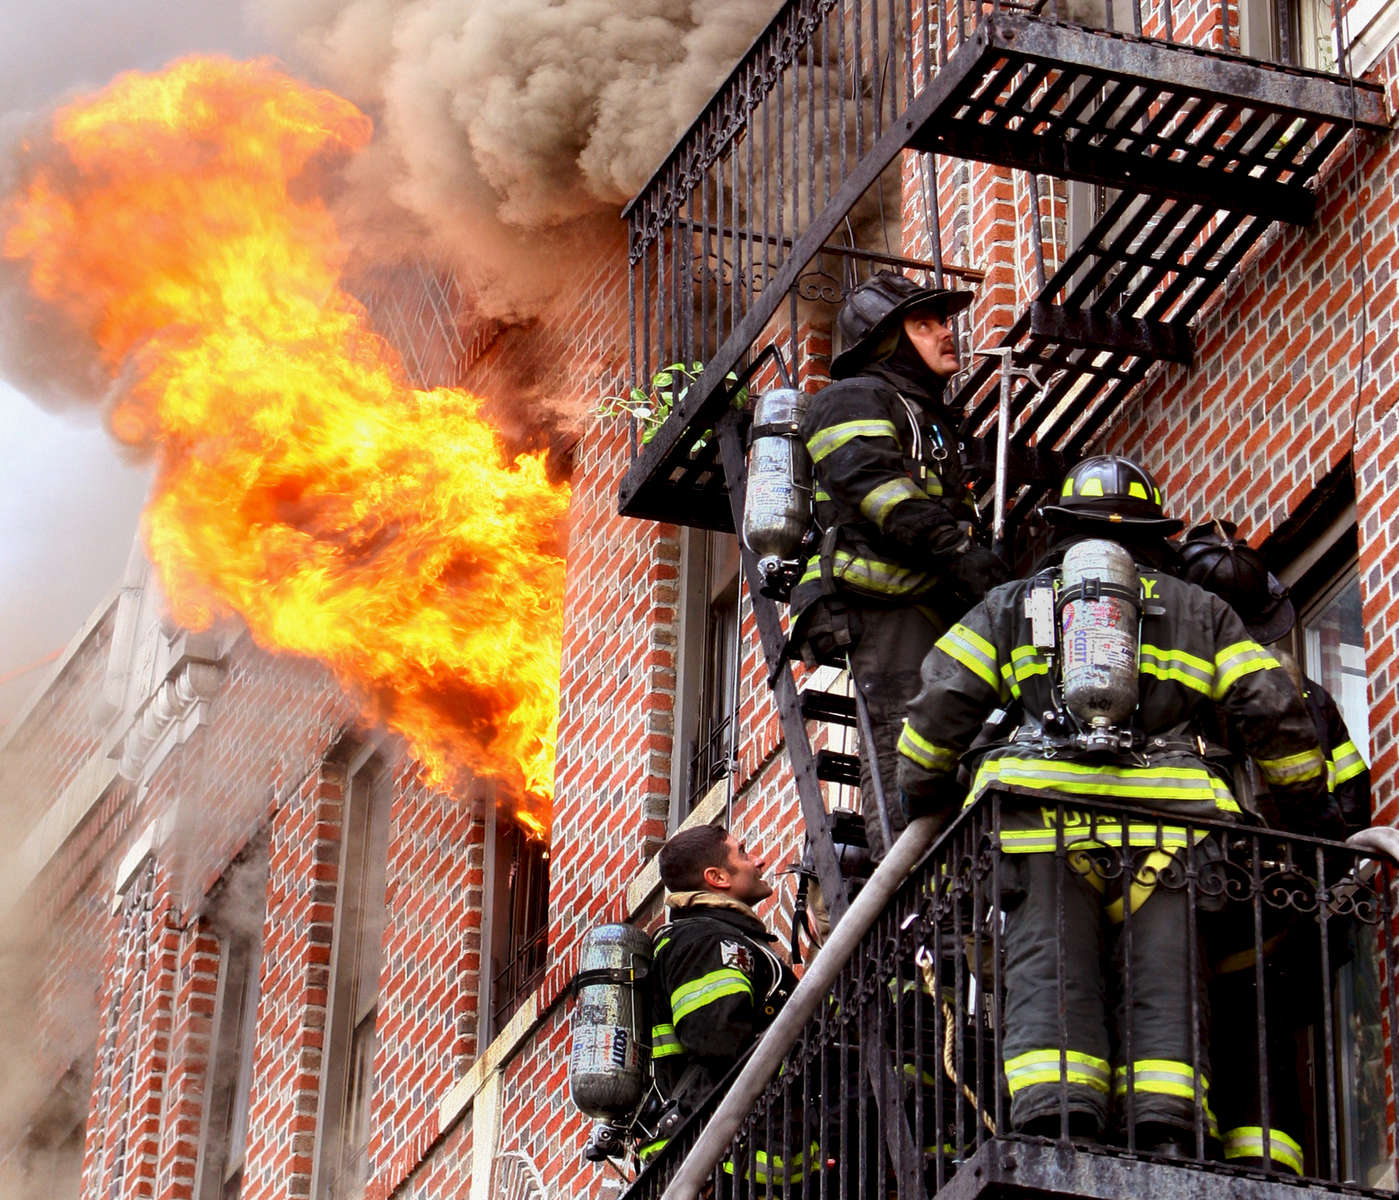 Firefighters battled a three-alarm blaze at 1299 Eastern Pkwy. in Brooklyn on Tuesday March 28, 2006.